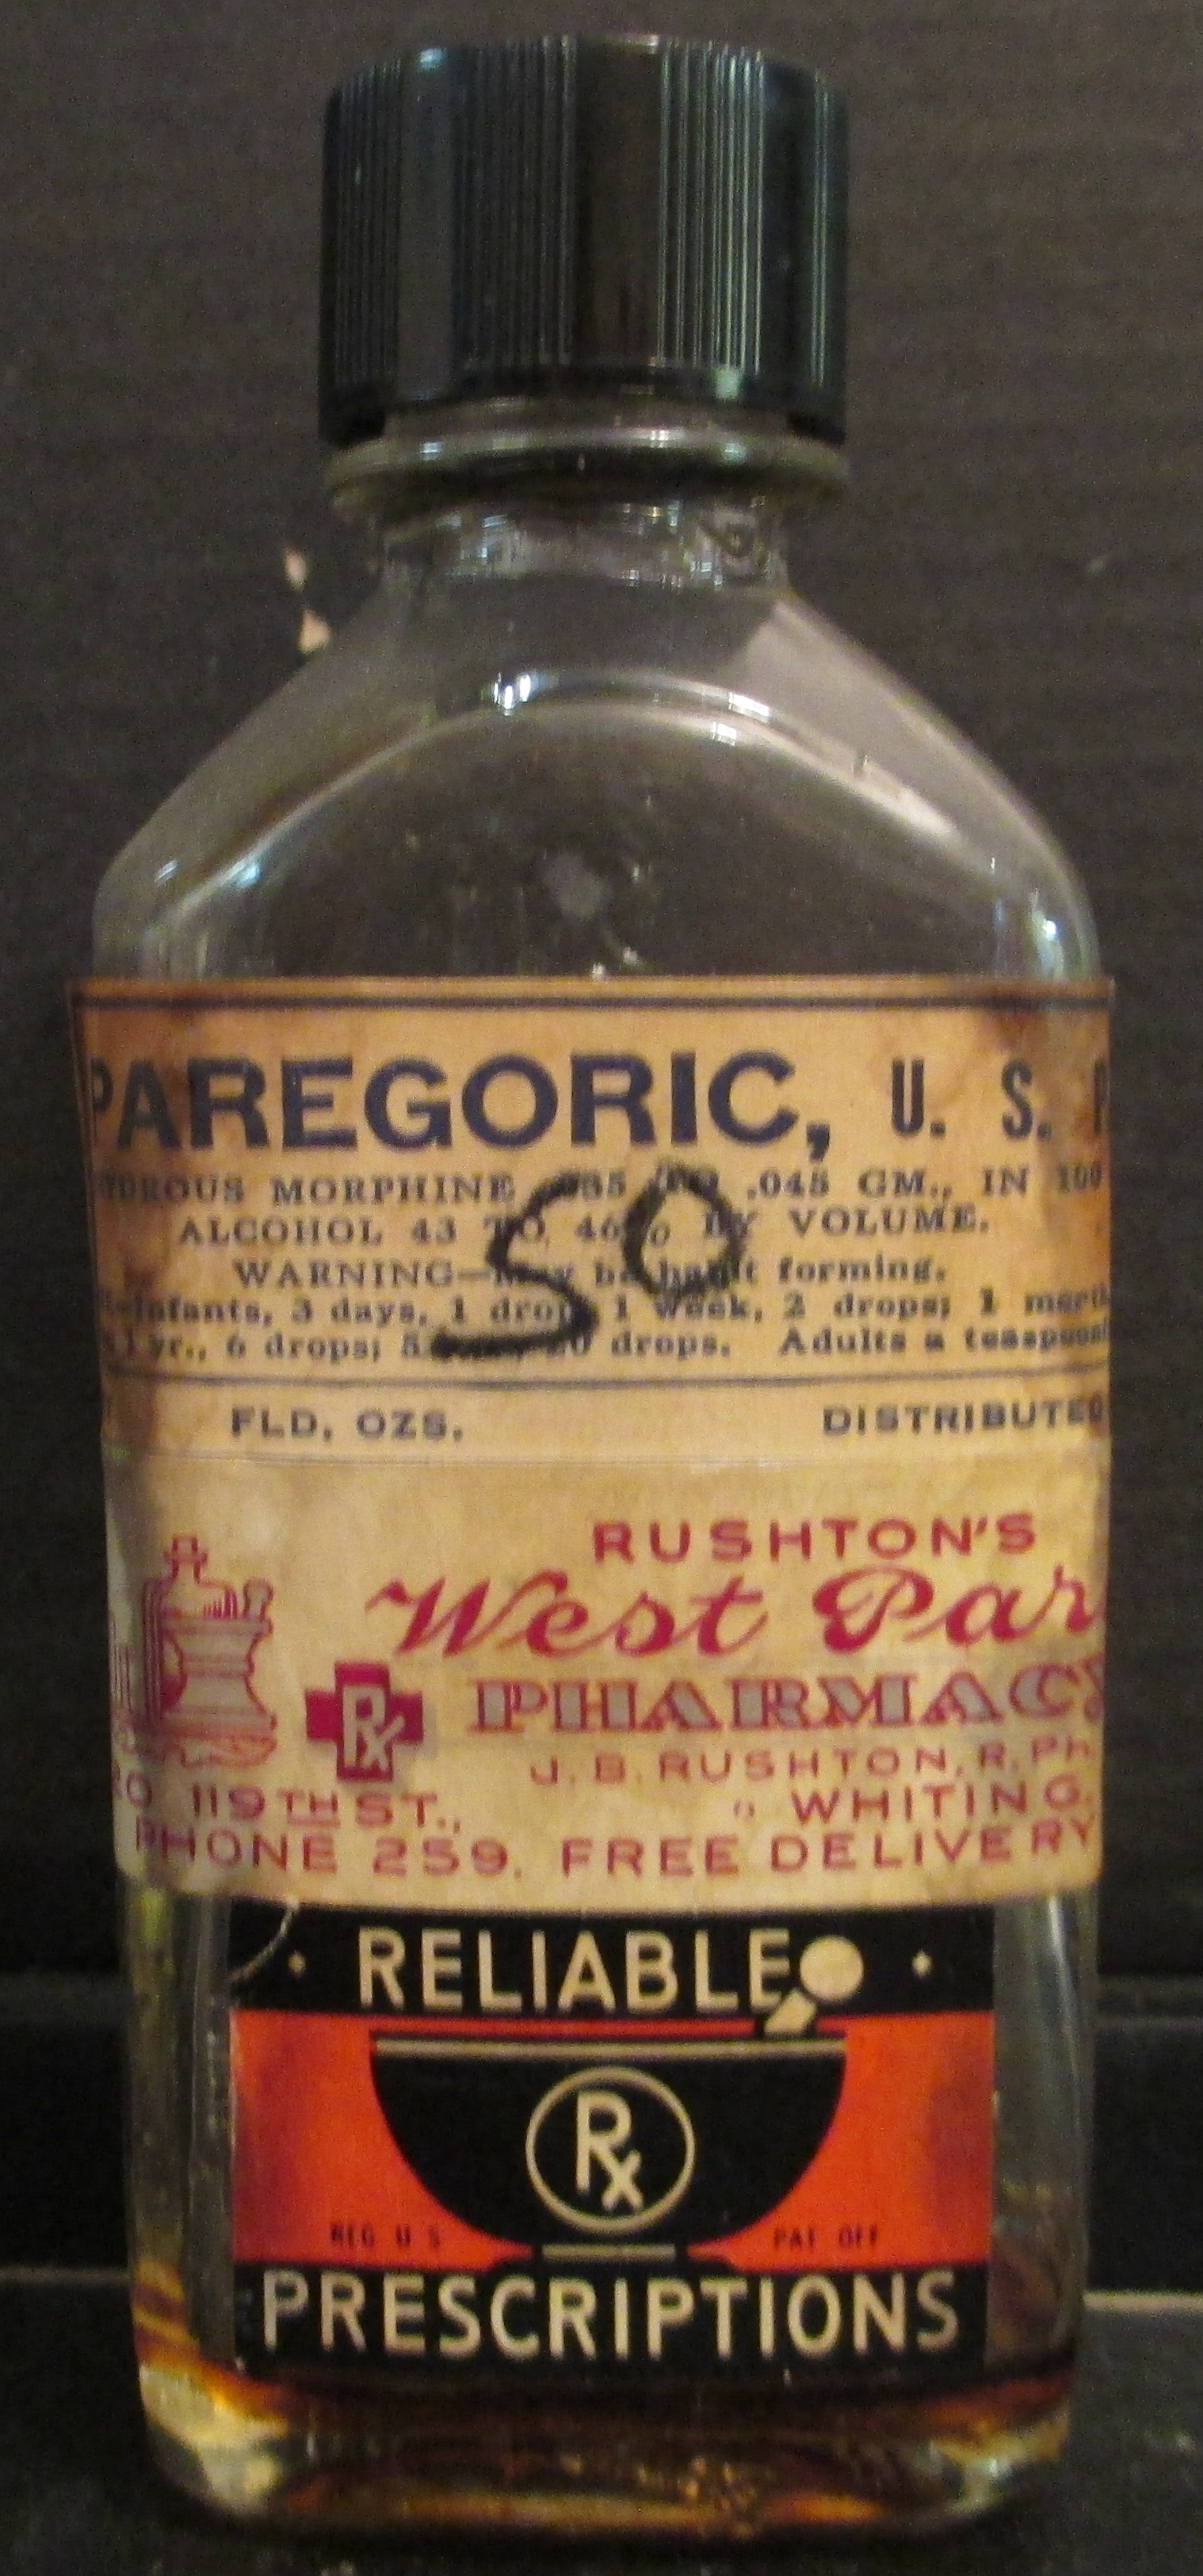 west park pharmacy bottle.jpg